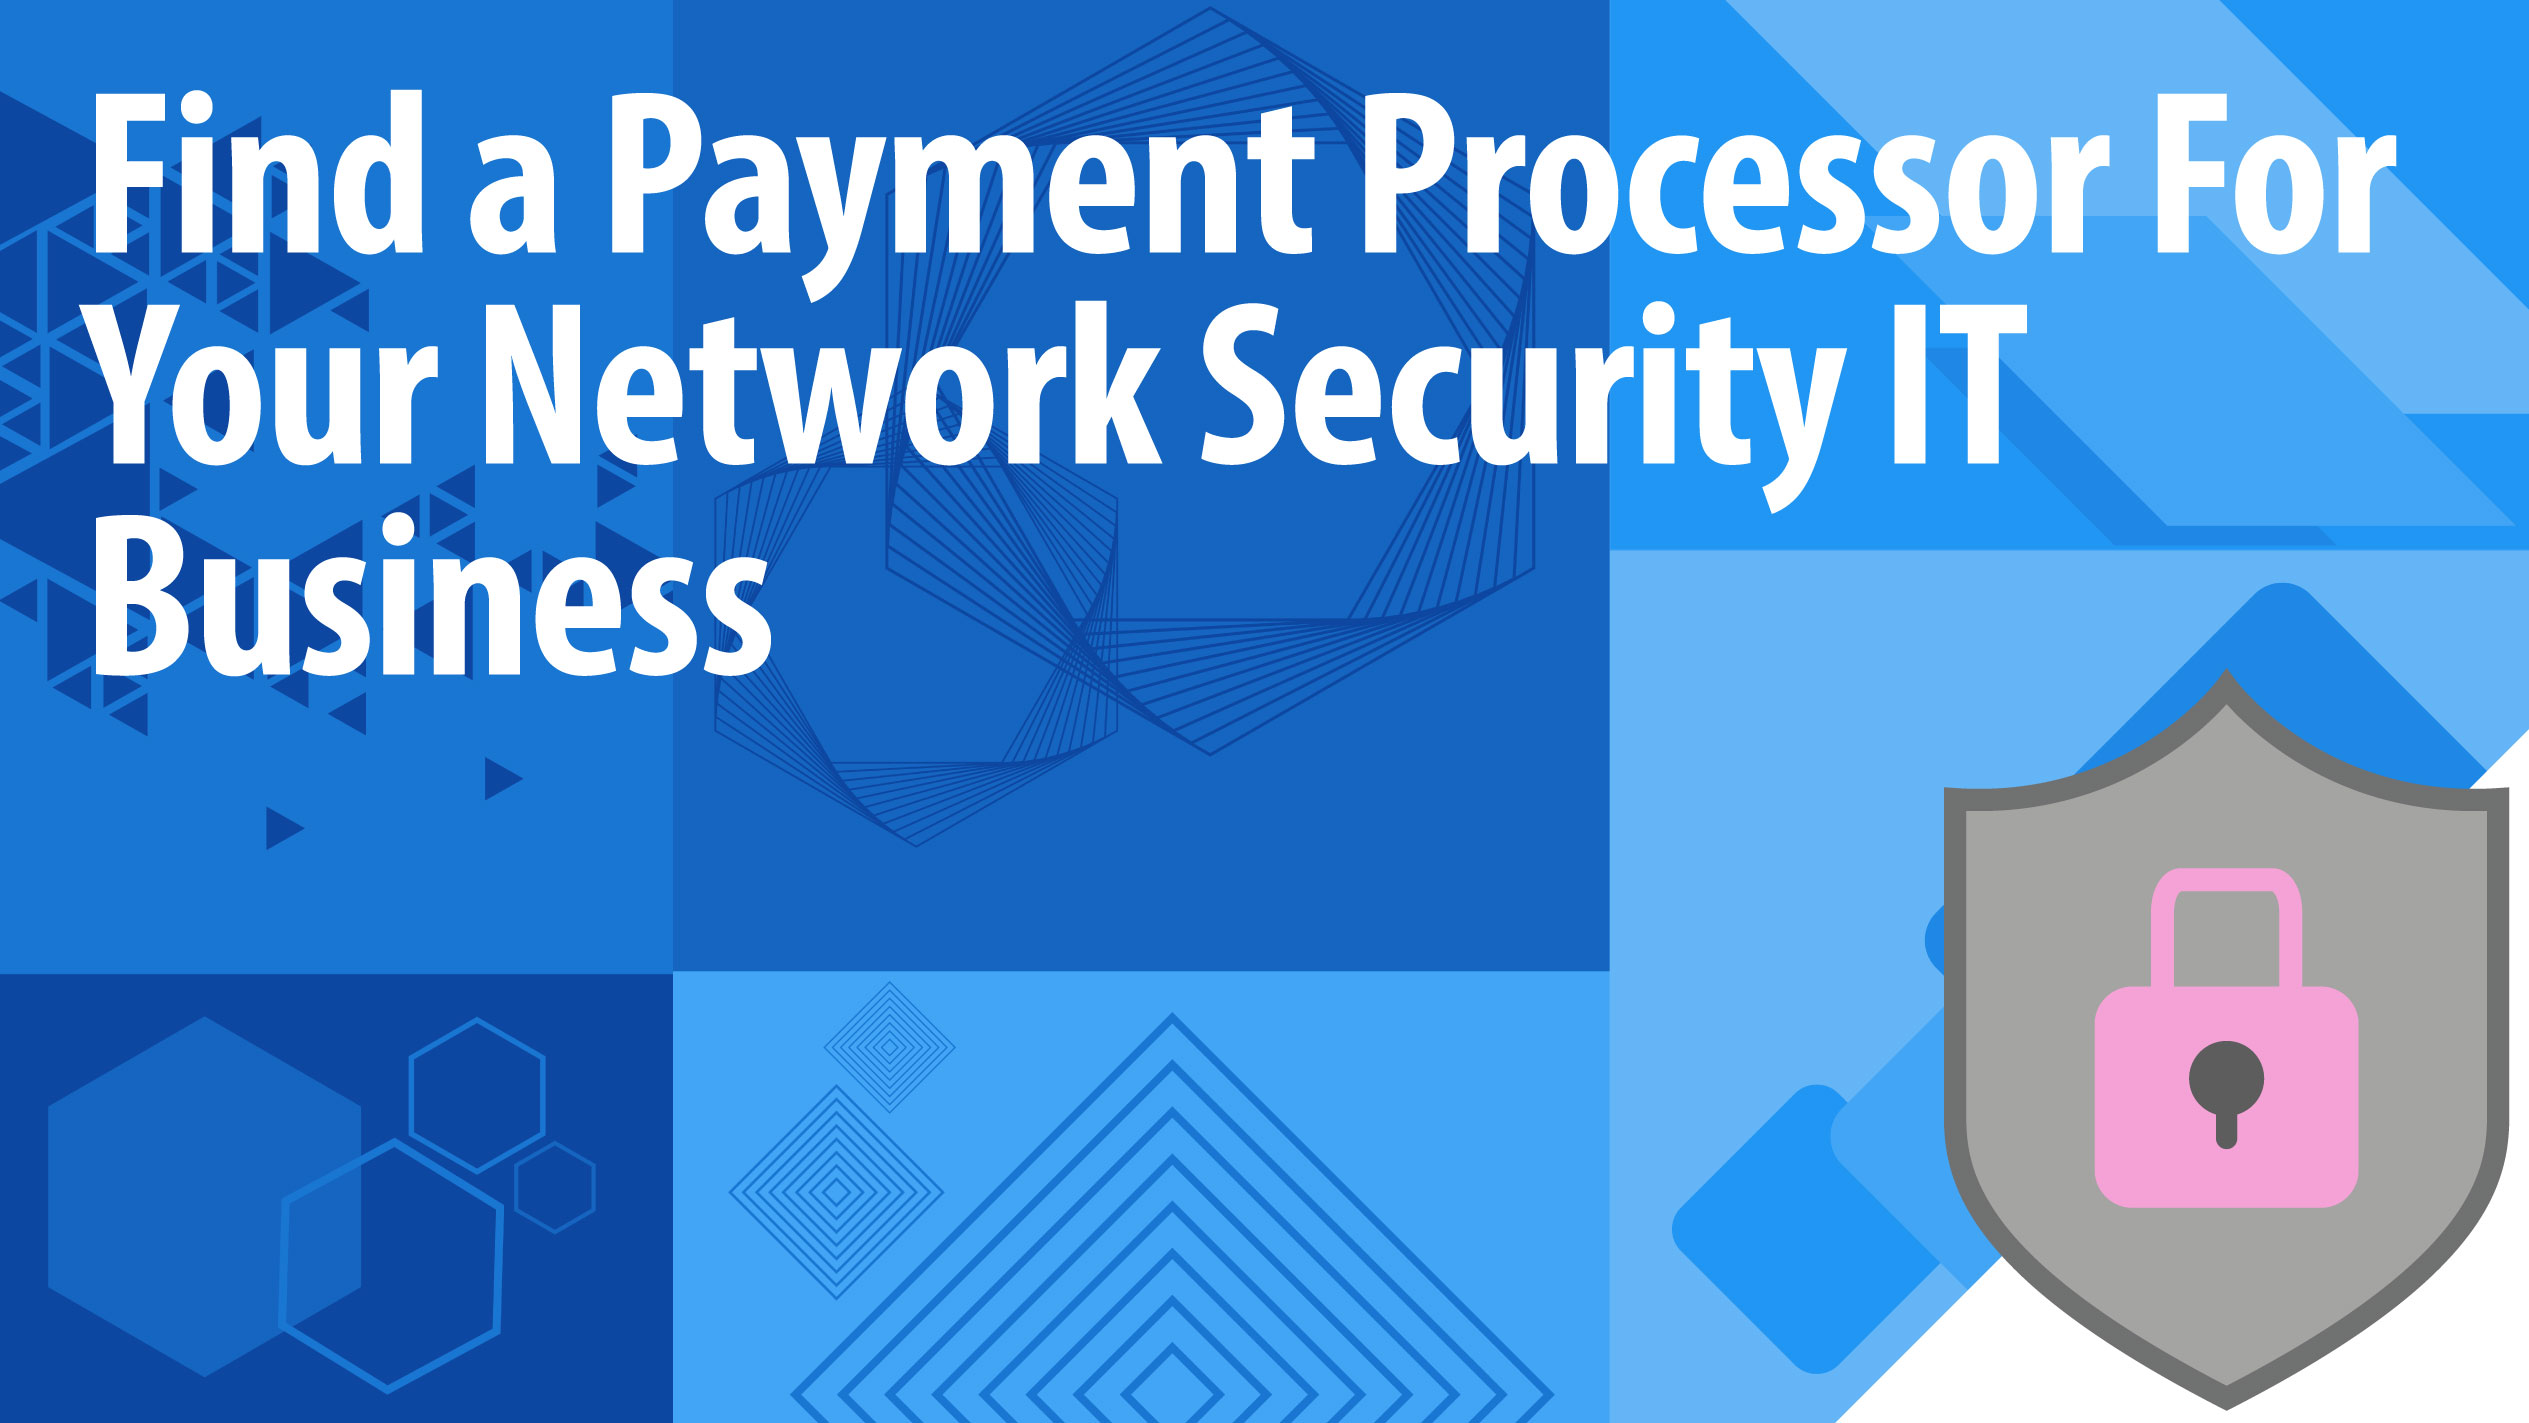 Find a Payment Processor For Your Network Security IT Business